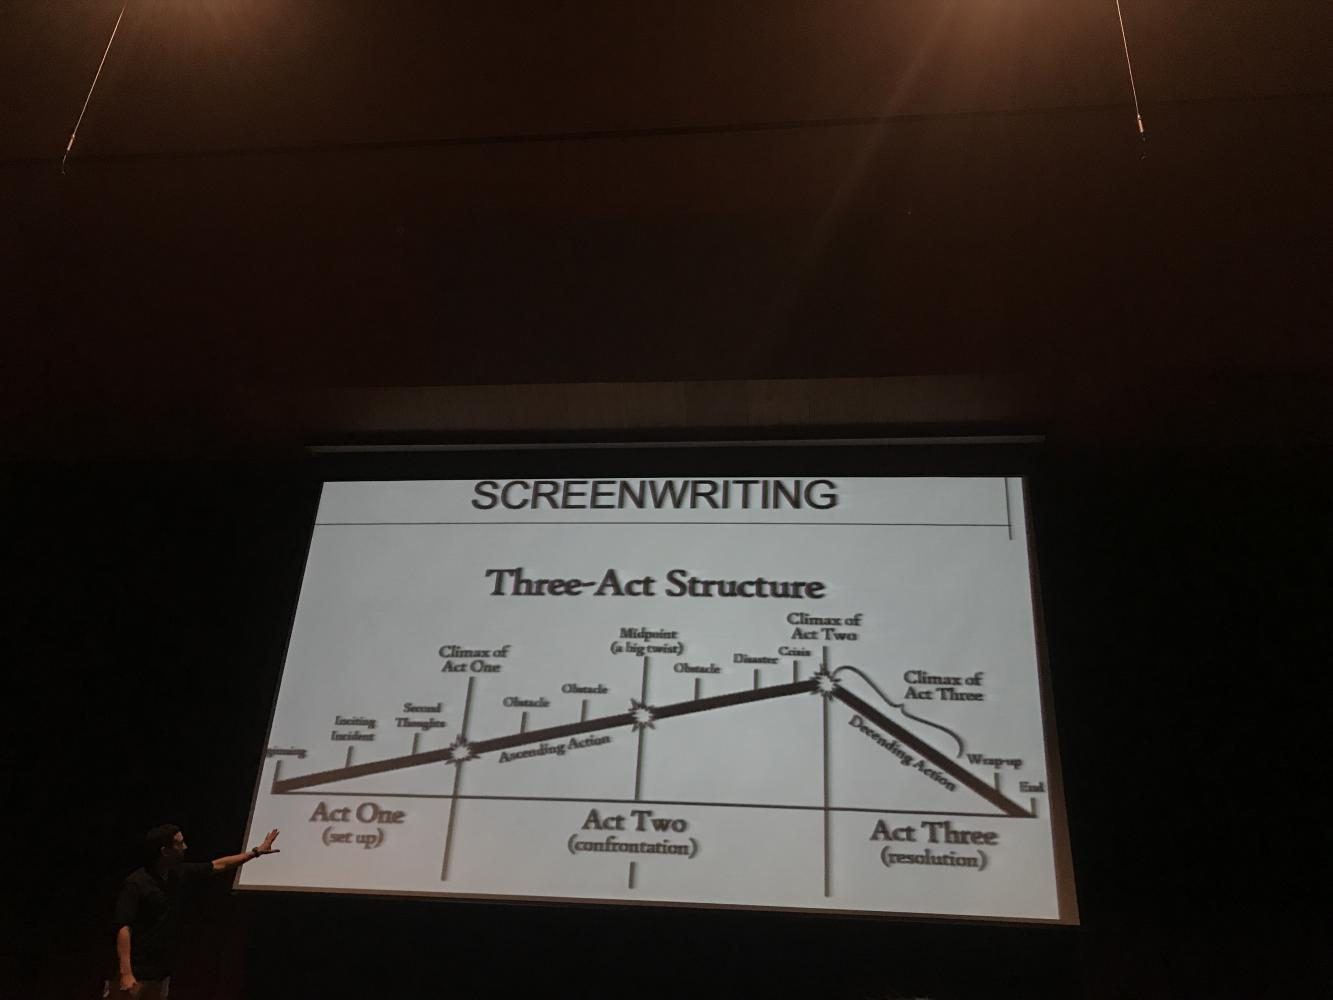 Filmmaker Russell Sharman gives screenwriting tips to students